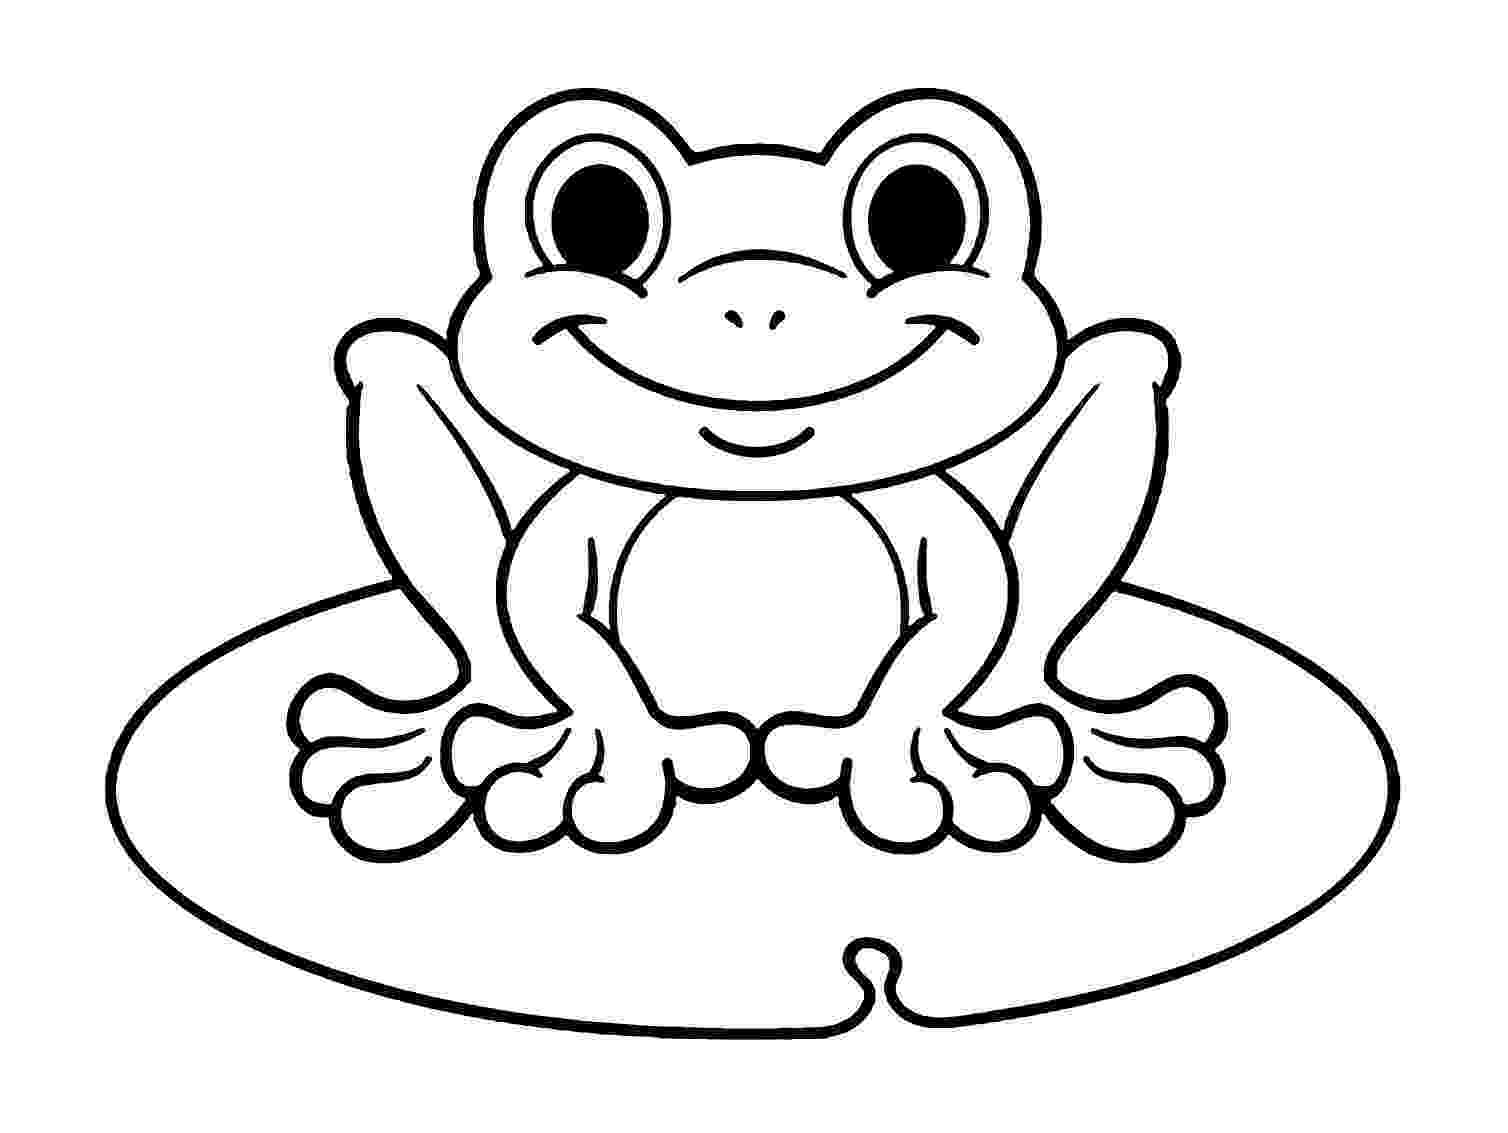 frog images to color free printable frog coloring pages for kids color frog to images